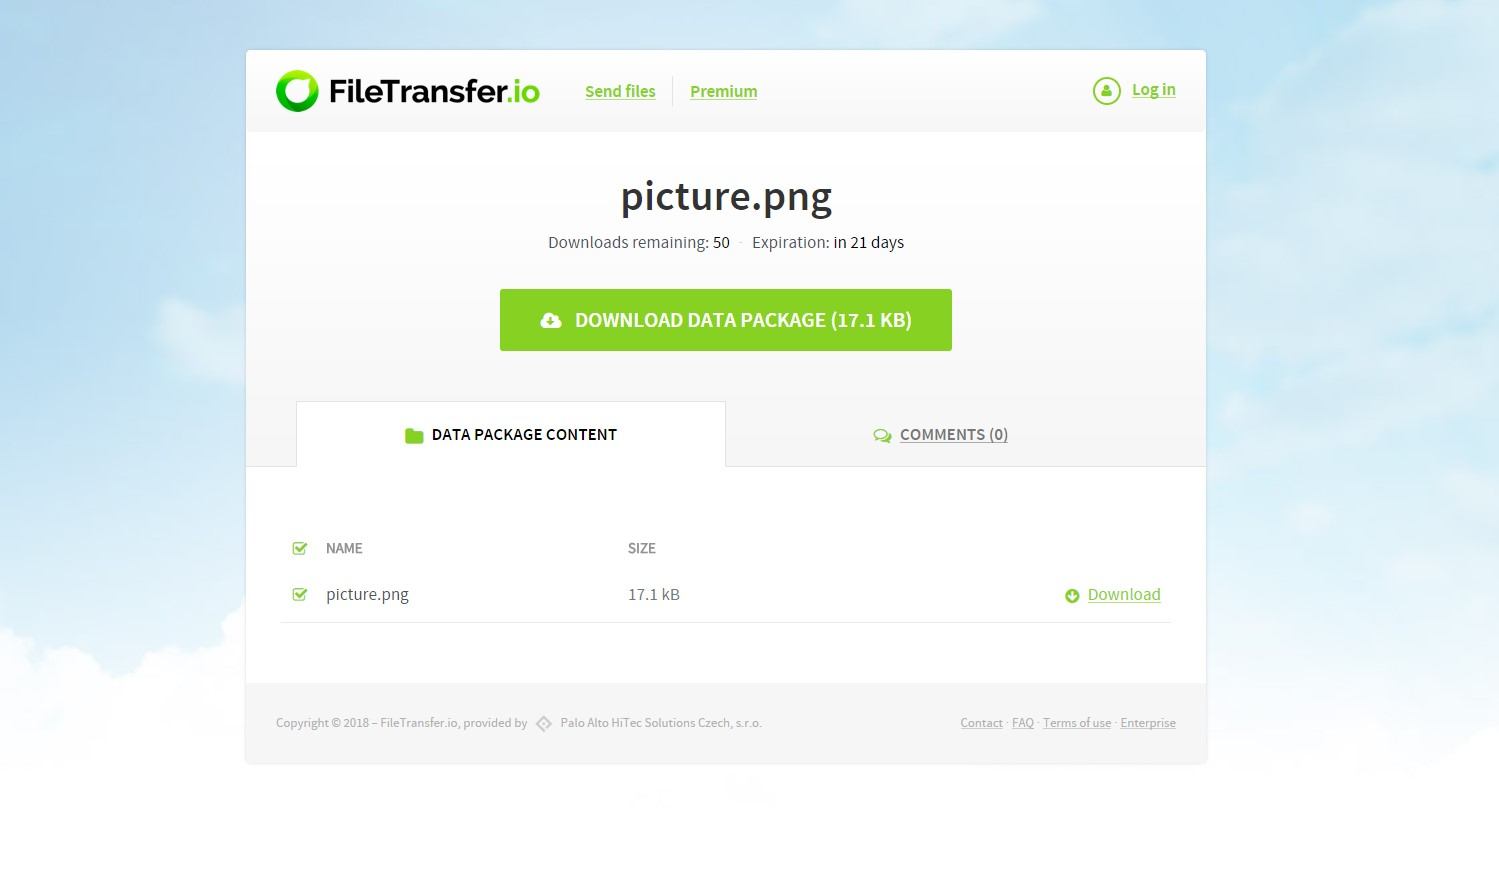 resume Wetransfer Resume Download free wetransfer alternatives alternativeto net filetransfer io offers more gbs but the upload also takes less time as service is pretty young and fresh they seem to add new features ov